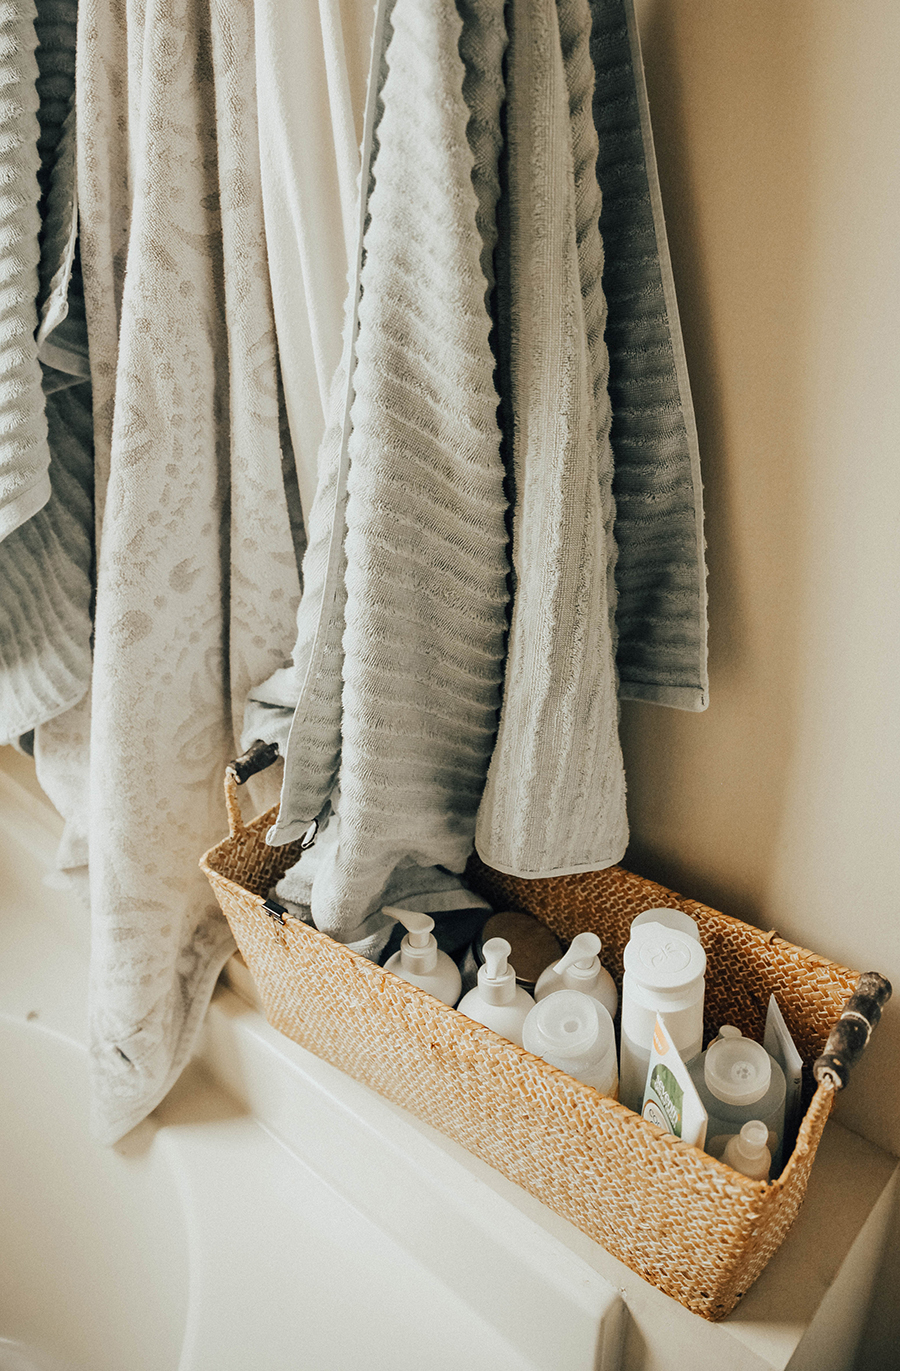 bathtub basket - bathroom organization - IHOD | In Honor Of Design